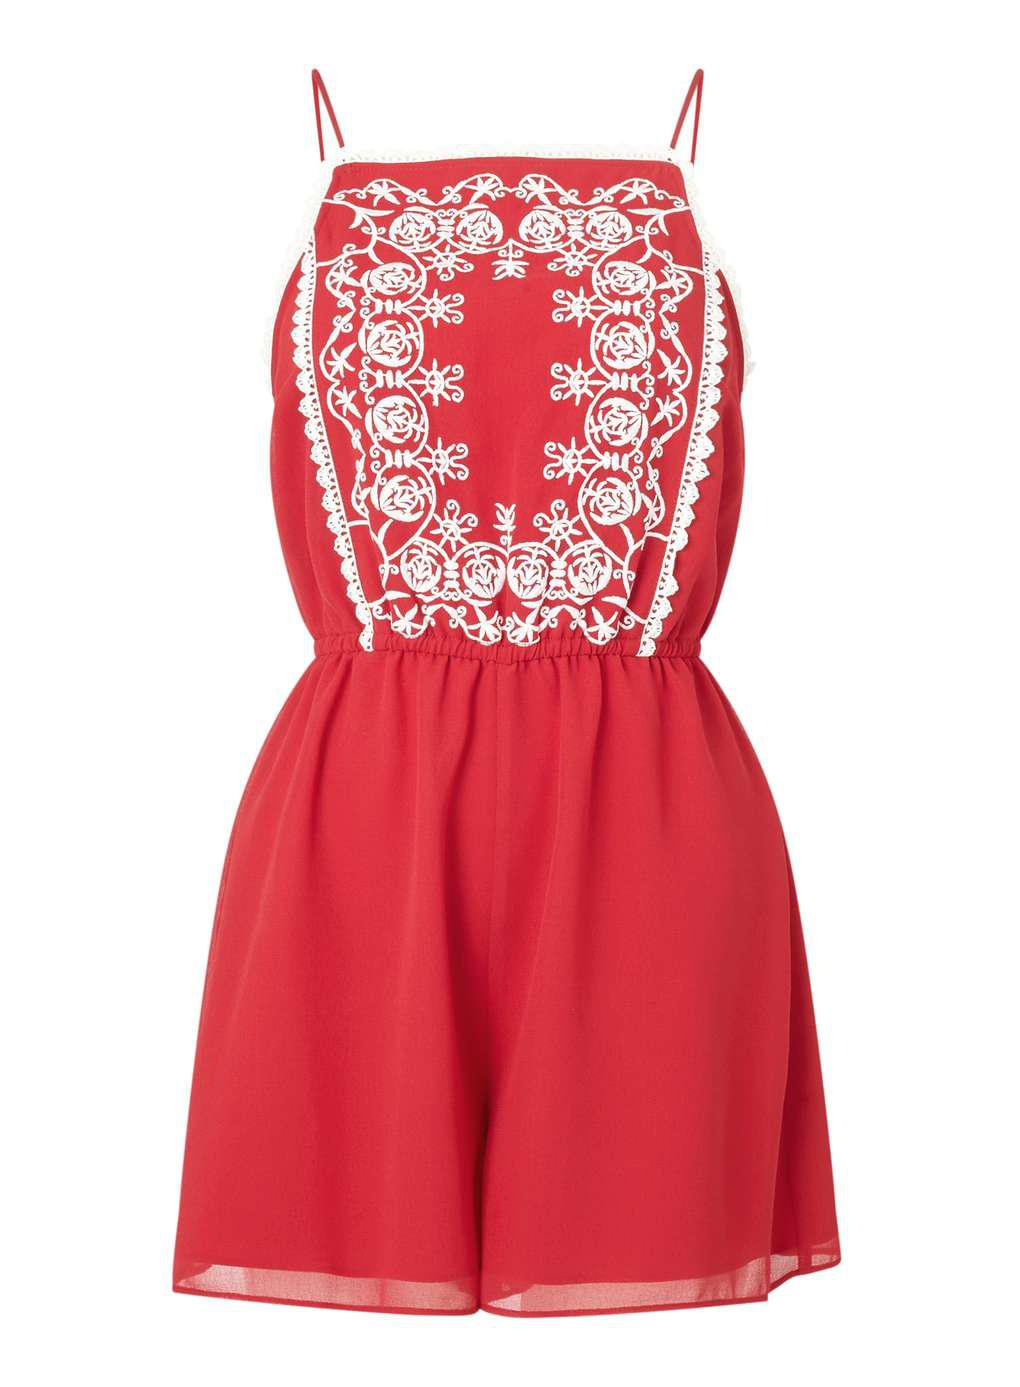 fc5afd4a27d Lyst - Miss Selfridge Petite Embroidered Playsuit in Red